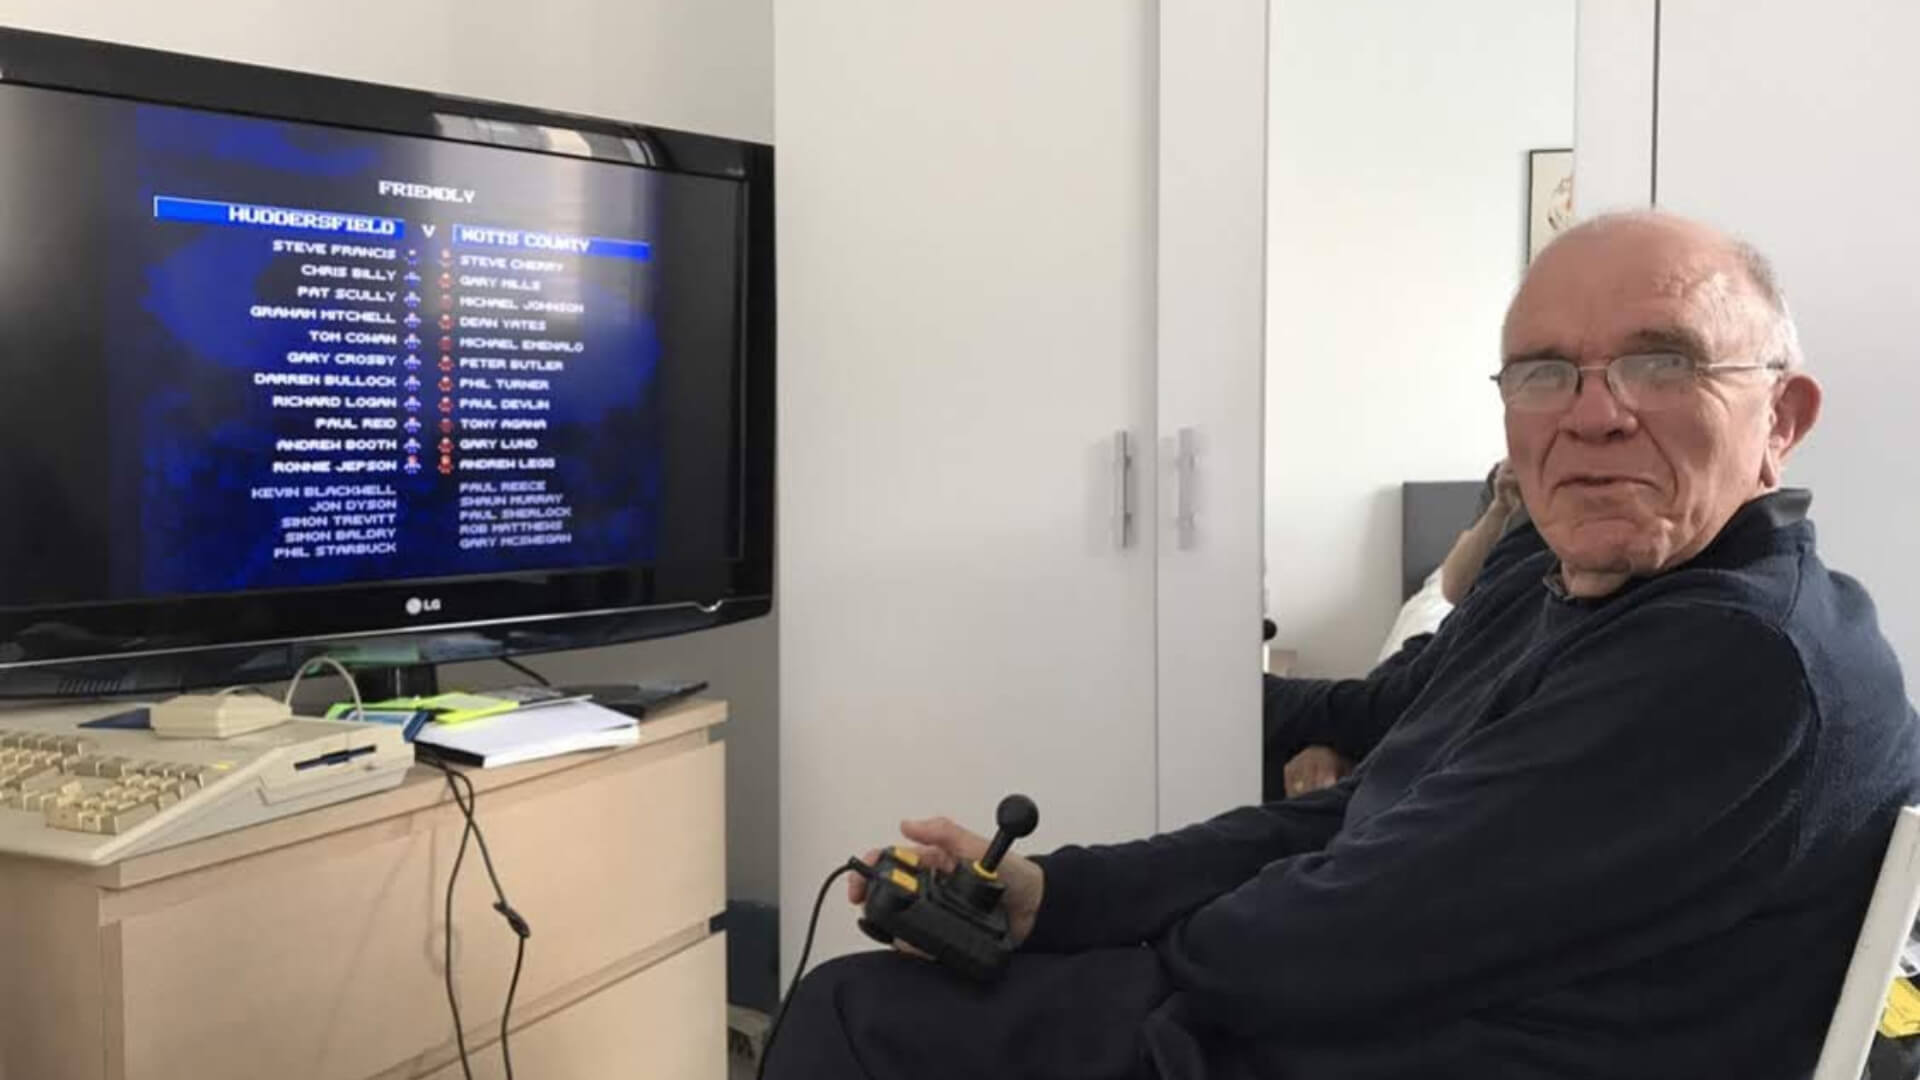 A picture of Carter's father during their recent revisit to the Commodore Amiga 500+ | Gamescapes | STIRworld